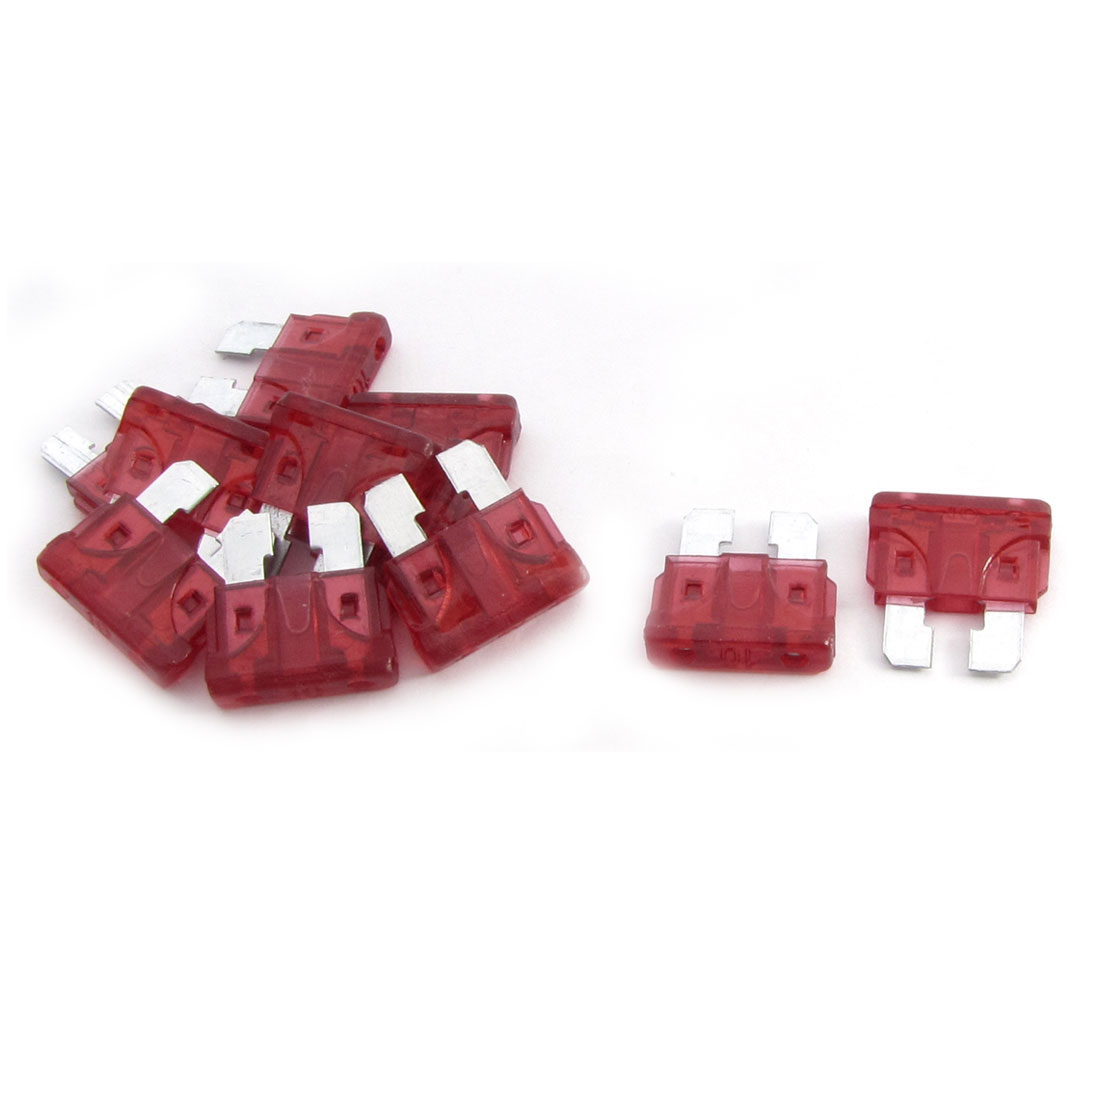 10A Car Truck Automotive Fast Acting Mini Blade Fuse Red 11 Pcs